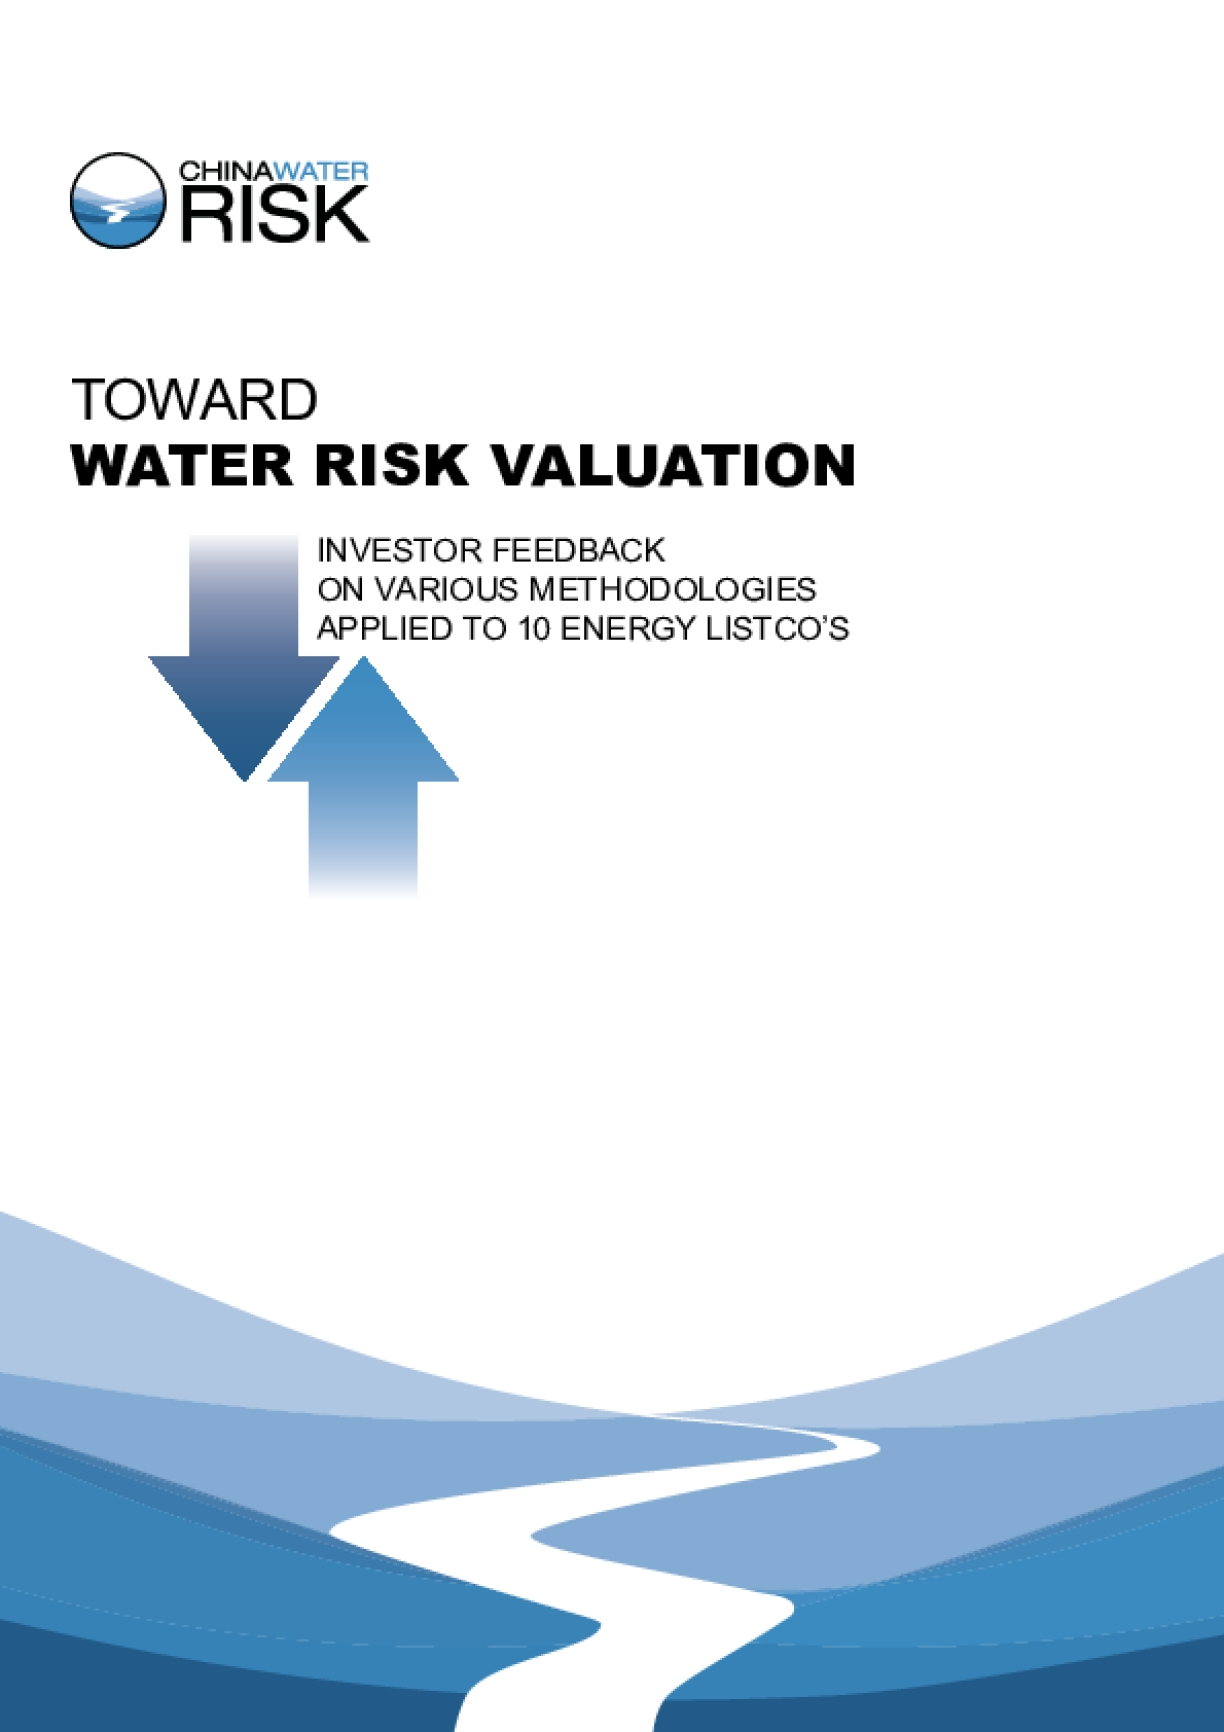 Toward Water Risk Valuation – Investor Feedback on Various Methodologies Applied to 10 Energy ListCo's